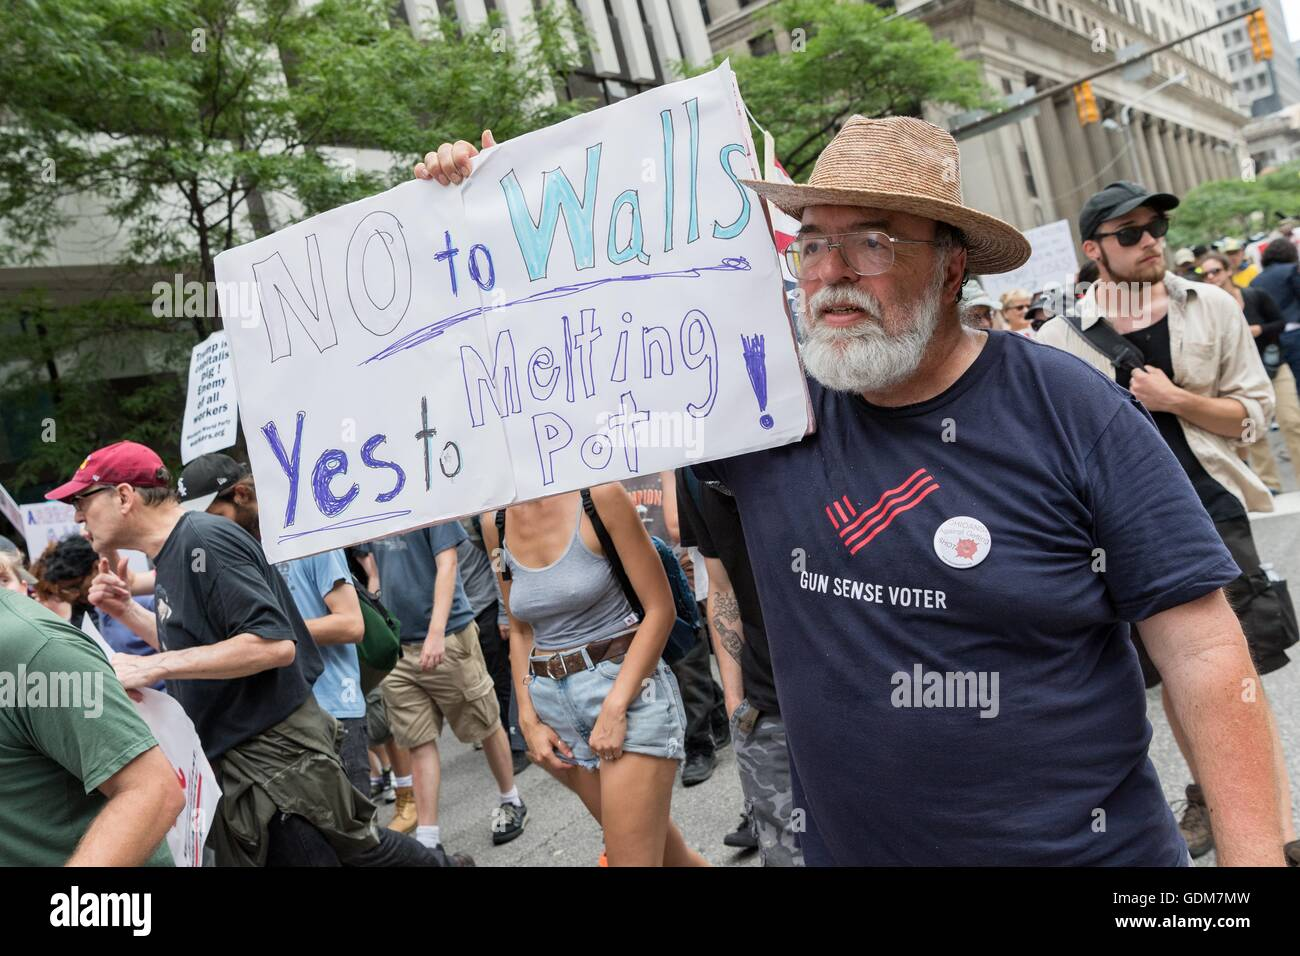 Cleveland, Ohio, USA. 18th July, 2016. Anti-Trump protesters march through downtown near the Republican National - Stock Image